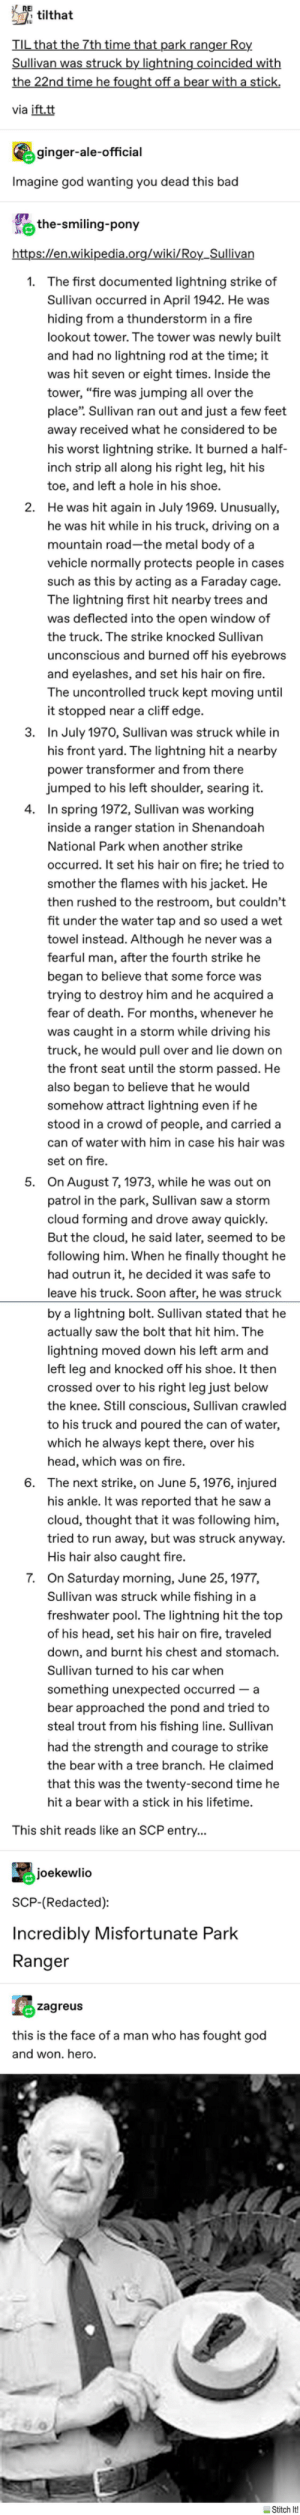 """god quakes in His presence: REI  i tilthat  TIL that the 7th time that park ranger Roy.  Sullivan was struck by lightning coincided with  the 22nd time he fought off a bear with a stick.  via ift.tt  ginger-ale-official  Imagine god wanting you dead this bad  fo the-smiling-pony  https://en.wikipedia.org/wiki/Roy_Sullivan  1. The first documented lightning strike of  Sullivan occurred in April 1942. He was  hiding from a thunderstorm in a fire  lookout tower. The tower was newly built  and had no lightning rod at the time; it  was hit seven or eight times. Inside the  tower, """"fire was jumping all over the  place"""". Sullivan ran out and just a few feet  away received what he considered to be  his worst lightning strike. It burned a half-  inch strip all along his right leg, hit his  toe, and left a hole in his shoe.  2.  He was hit again in July 1969. Unusually,  he was hit while in his truck, driving on a  mountain road-the metal body of a  vehicle normally protects people in cases  such as this by acting as a Faraday cage.  The lightning first hit nearby trees and  was deflected into the open window of  the truck. The strike knocked Sullivan  unconscious and burned off his eyebrows  and eyelashes, and set his hair on fire.  The uncontrolled truck kept moving until  it stopped near a cliff edge.  In July 1970, Sullivan was struck while in  his front yard. The lightning hit a nearby  3.  power transformer and from there  jumped to his left shoulder, searing it.  In spring 1972, Sullivan was working  inside a ranger station in Shenandoah  4.  National Park when another strike  occurred. It set his hair on fire; he tried to  smother the flames with his jacket. He  then rushed to the restroom, but couldn't  fit under the water tap and so used a wet  towel instead. Although he never was a  fearful man, after the fourth strike he  began to believe that some force was  trying to destroy him and he acquired a  fear of death. For months, whenever he  was caught in a storm whi"""